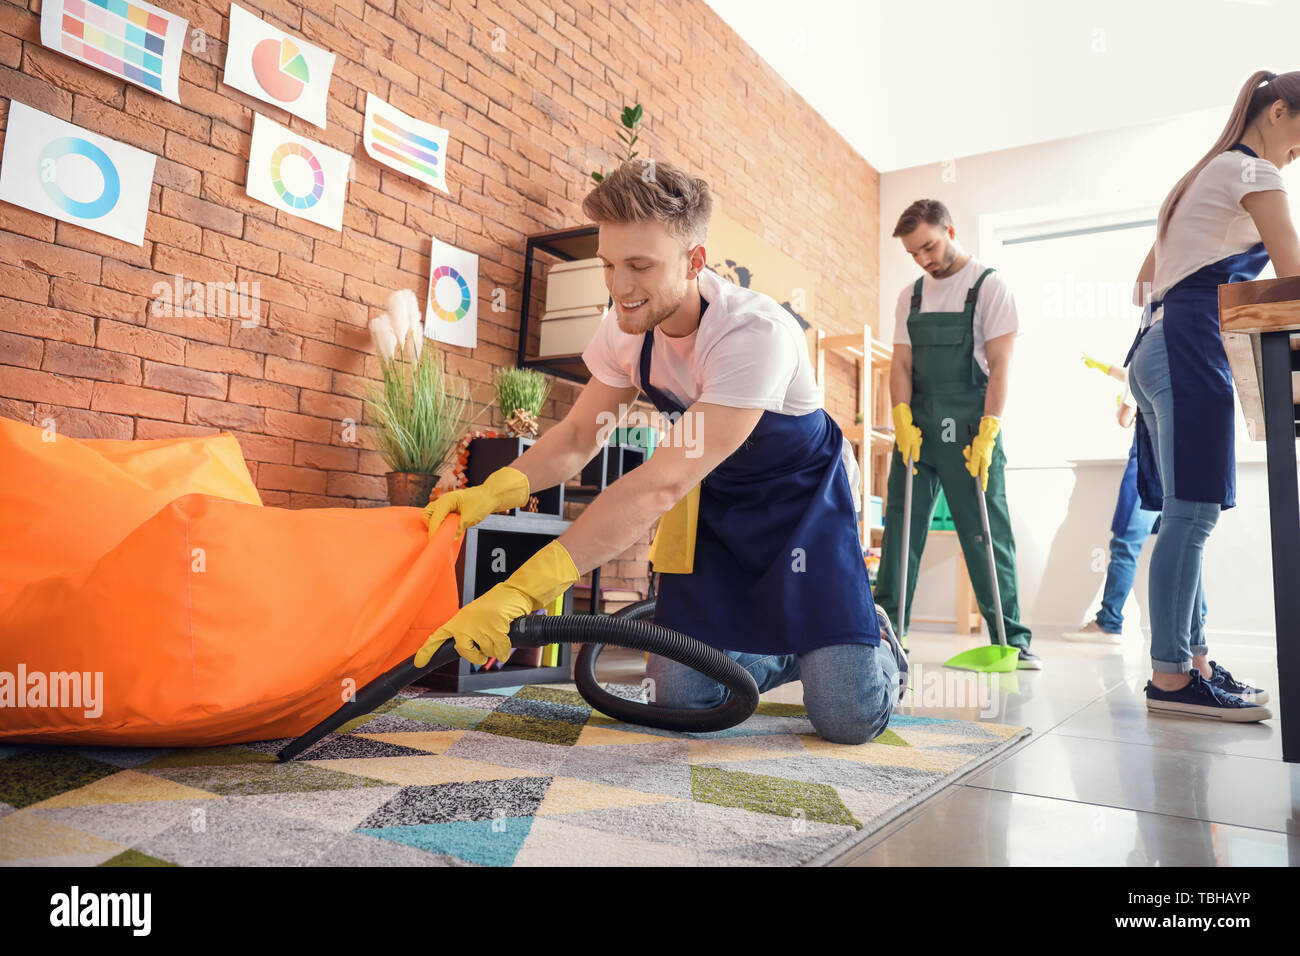 Male janitor cleaning office - Stock Image